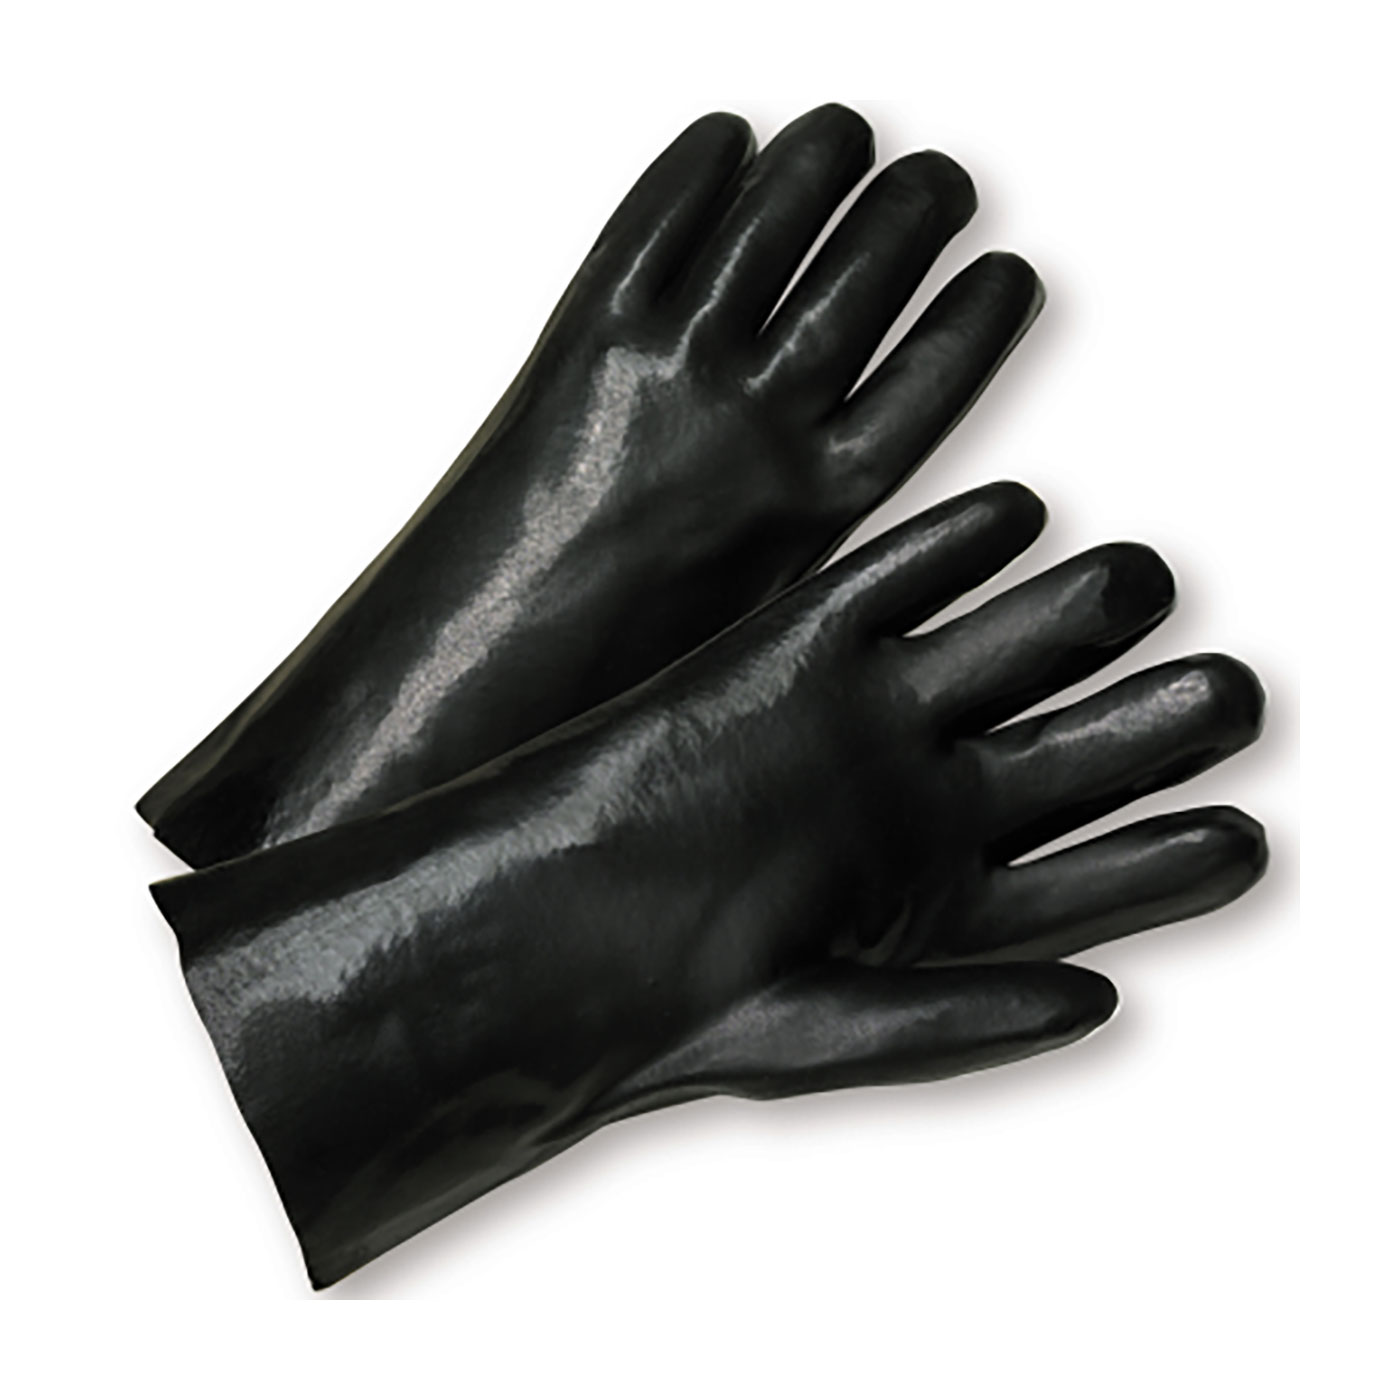 "PVC Dipped Glove with Interlock Liner and Smooth Finish - 14"", Black, L"